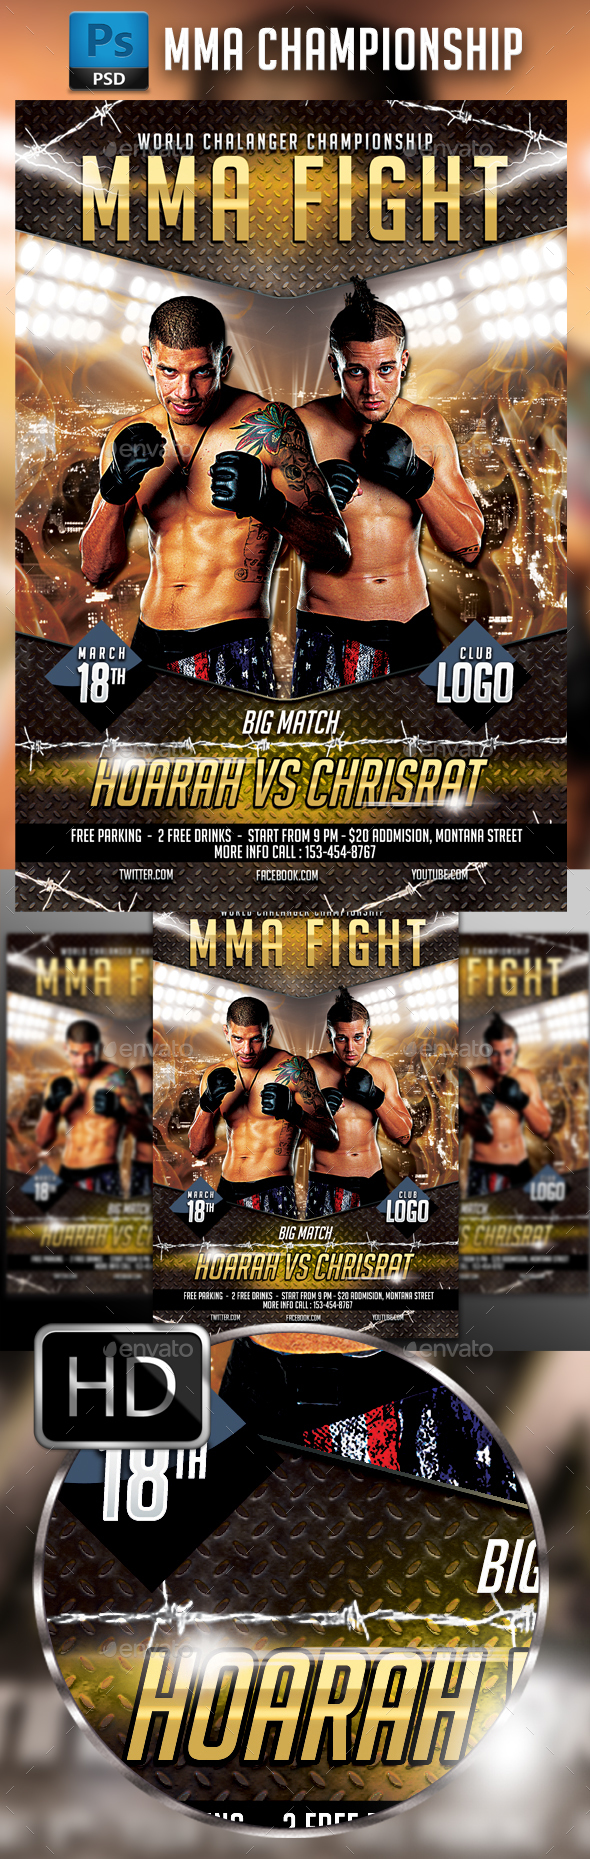 UFC - MMA Fighting Flyer Template #5 - Sports Events